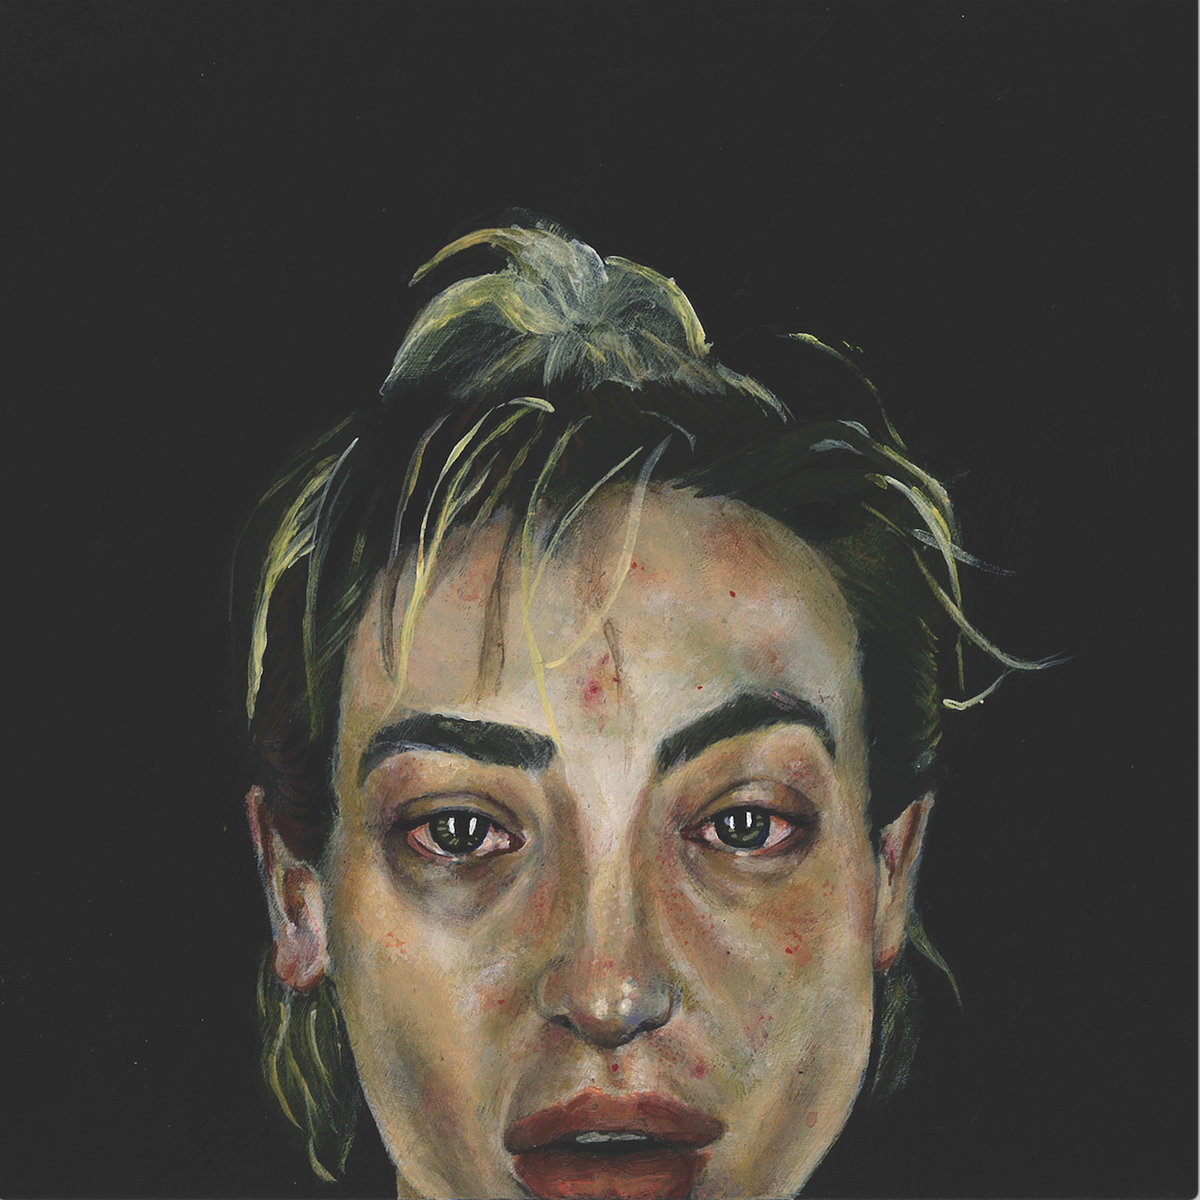 An oil painting of a dirty blonde woman with her hair in a ponytail in front of a black background. She seems to have been crying, with watery, red eyes.